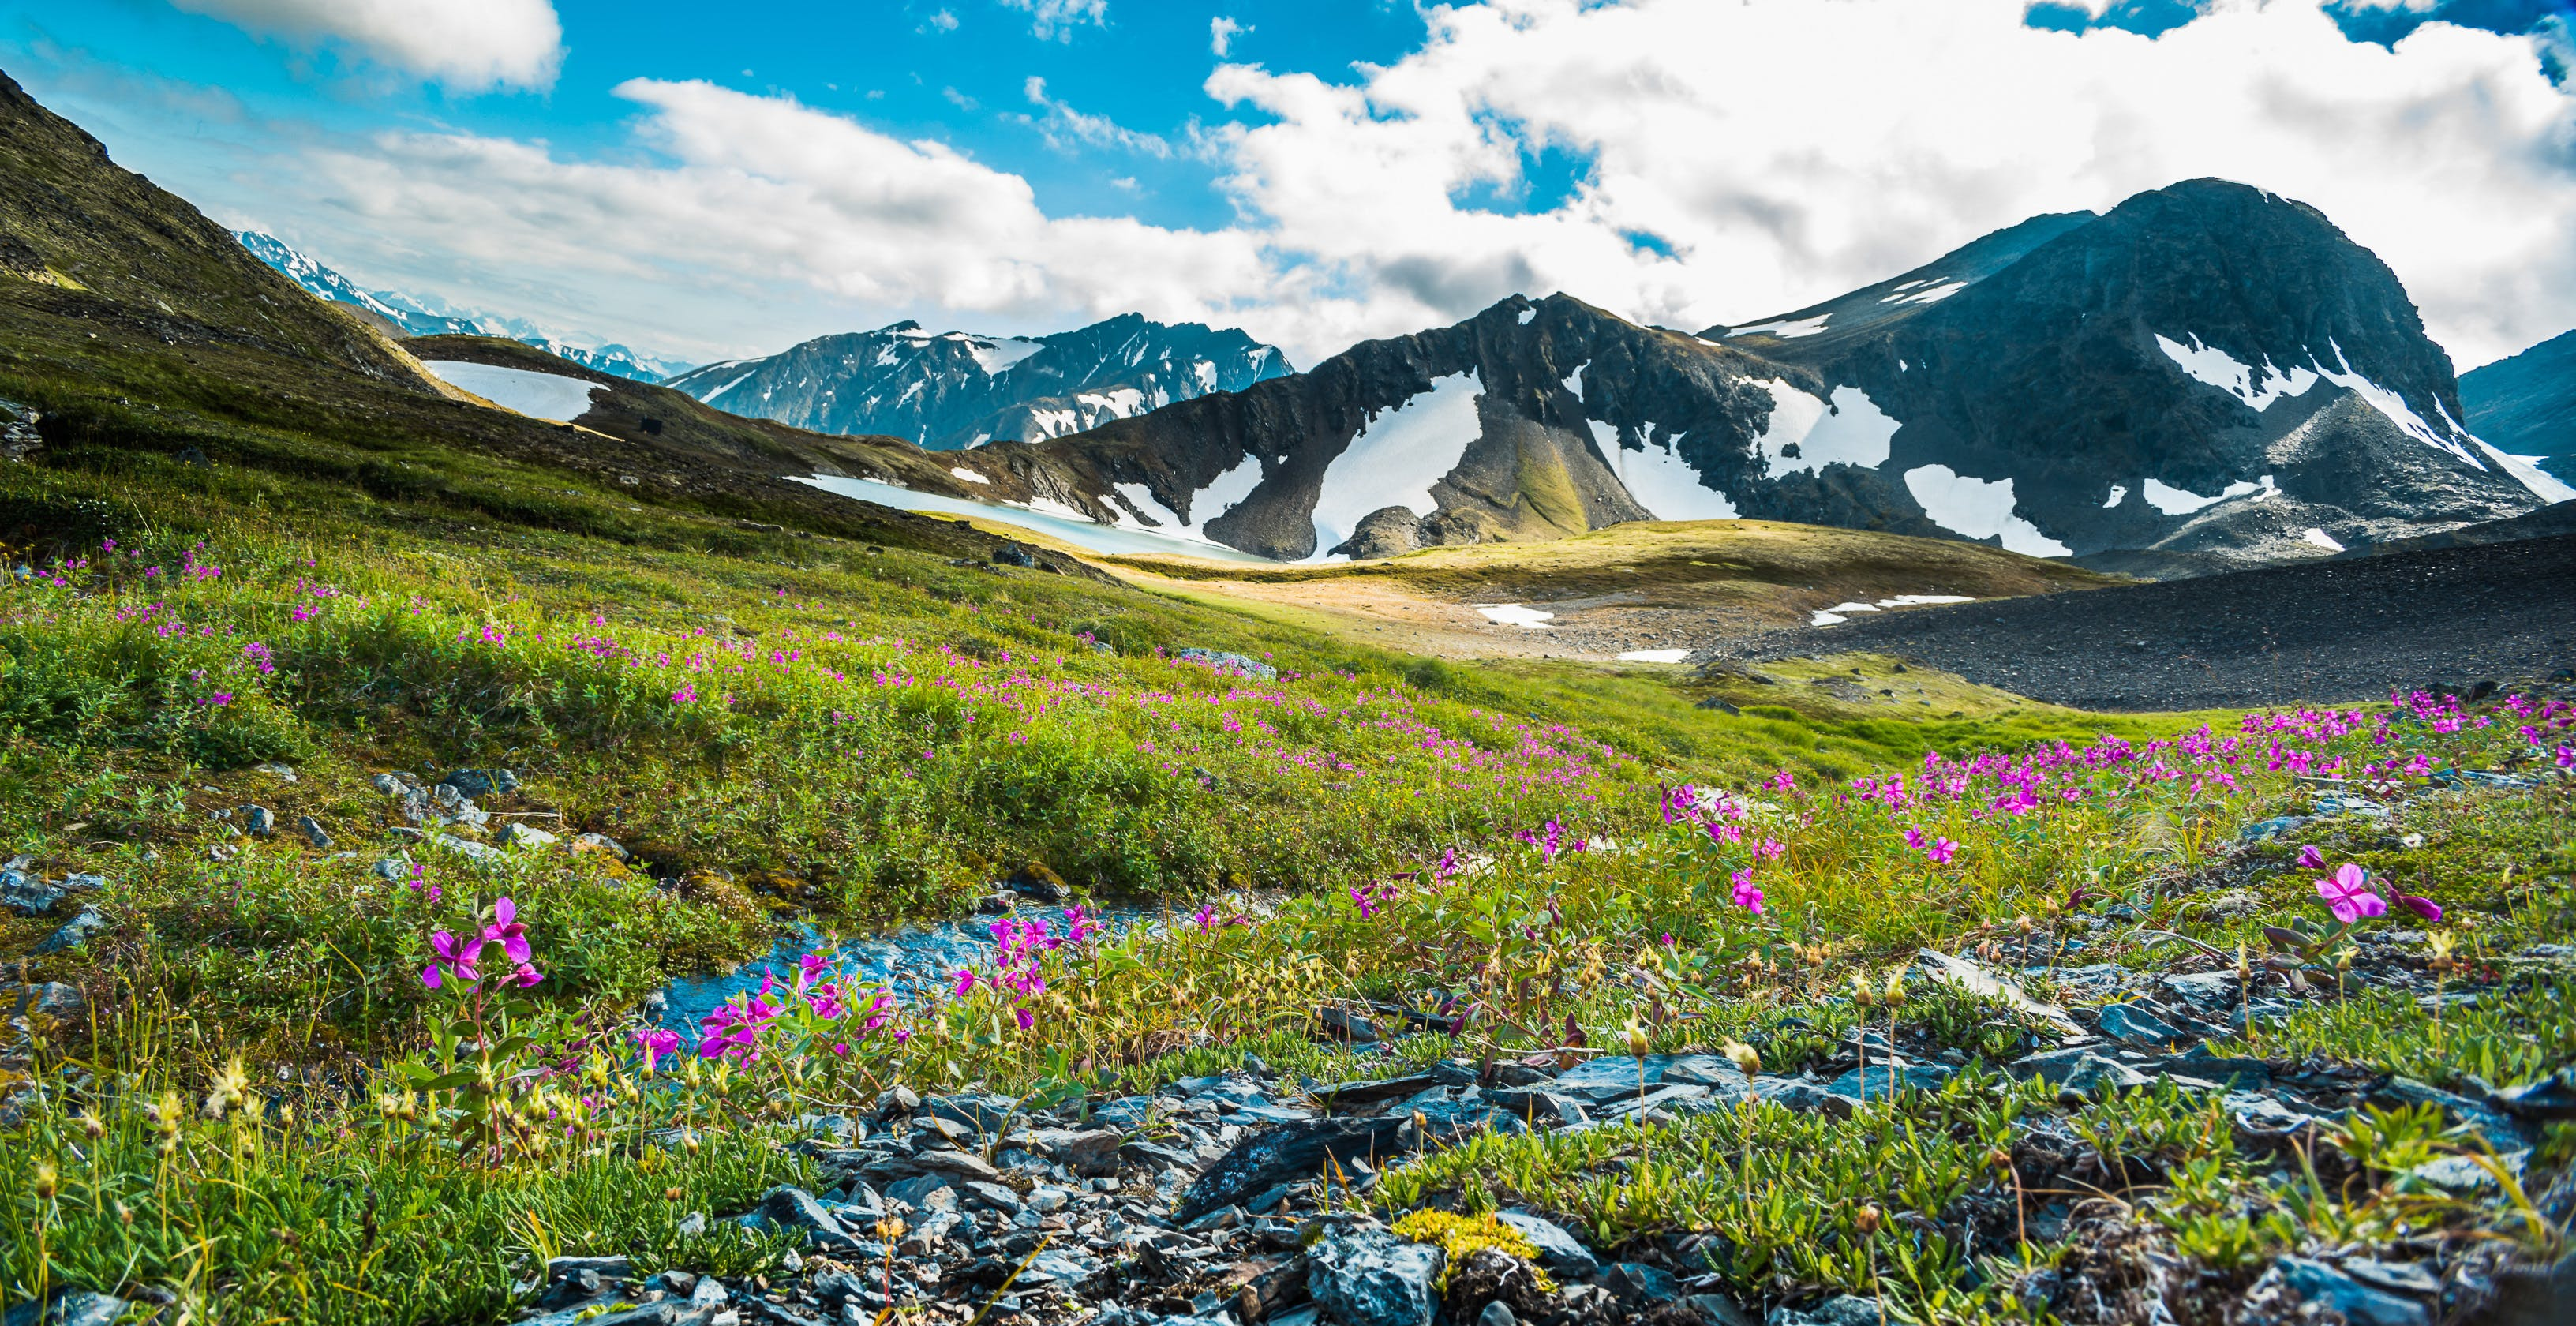 Alaska in full bloom.